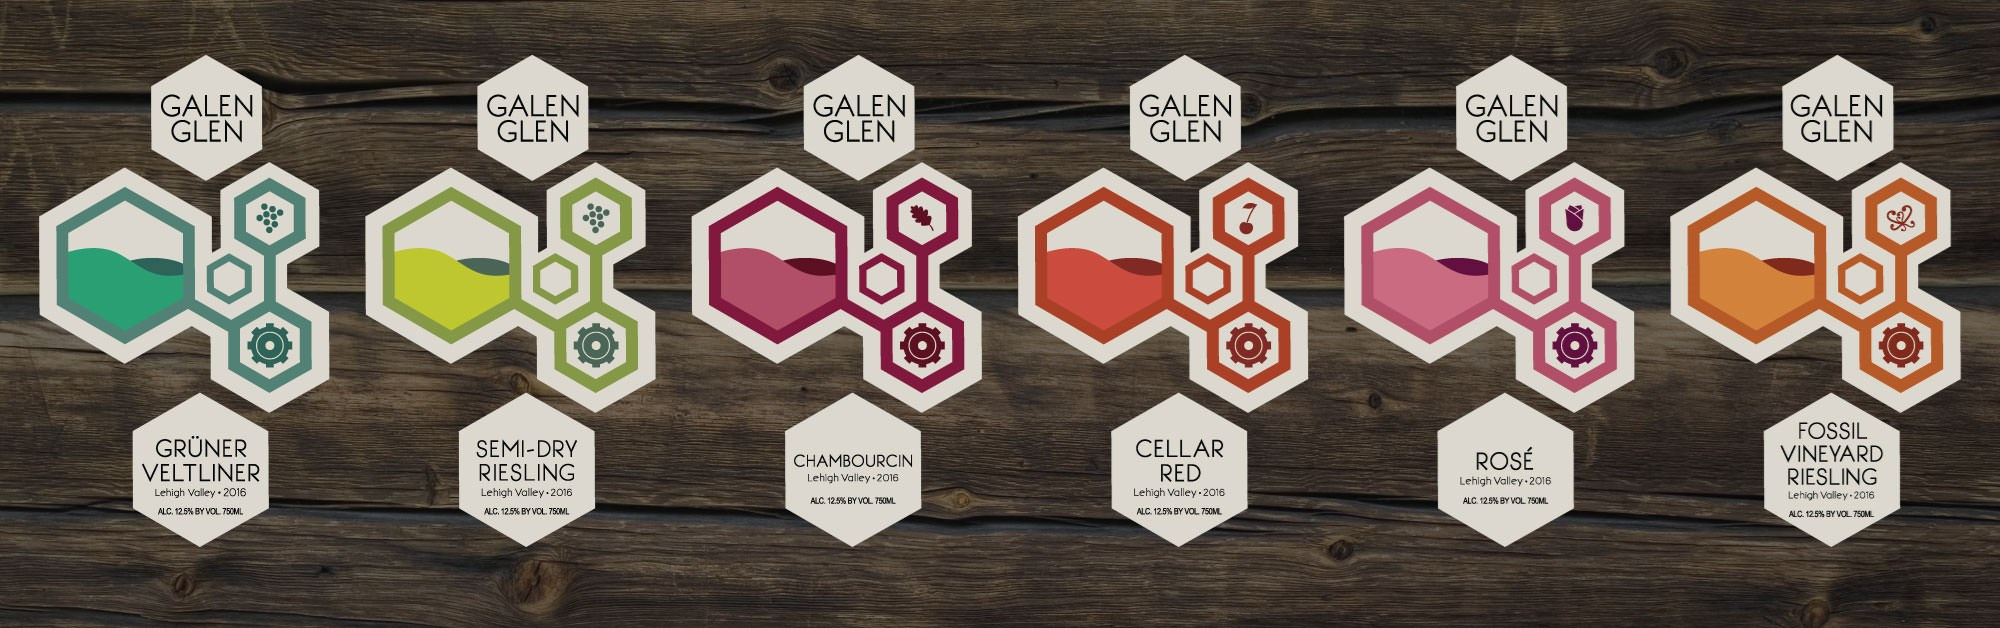 Galen Glen Labels